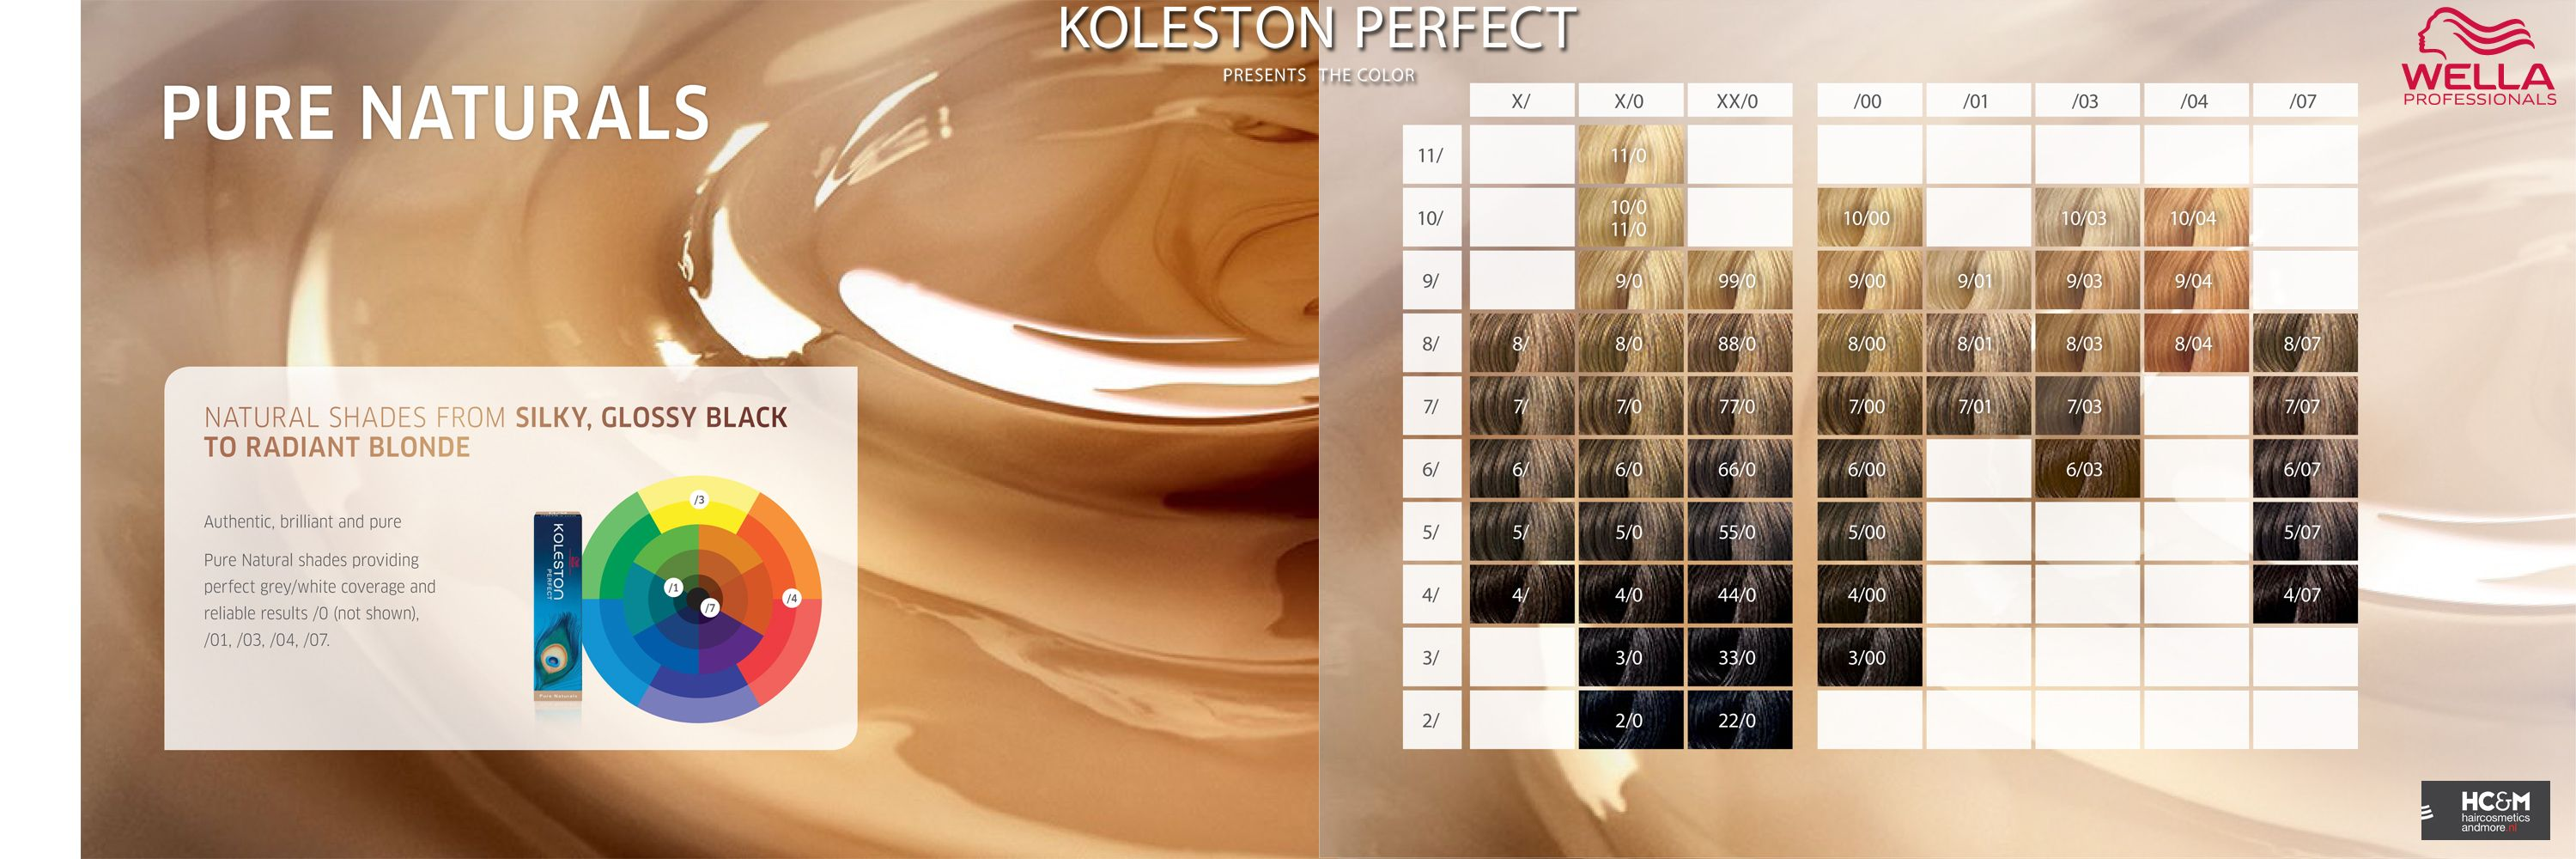 Wella professionals koleston perfect presents the color pure wella professionals koleston perfect presents the color pure naturals nvjuhfo Gallery